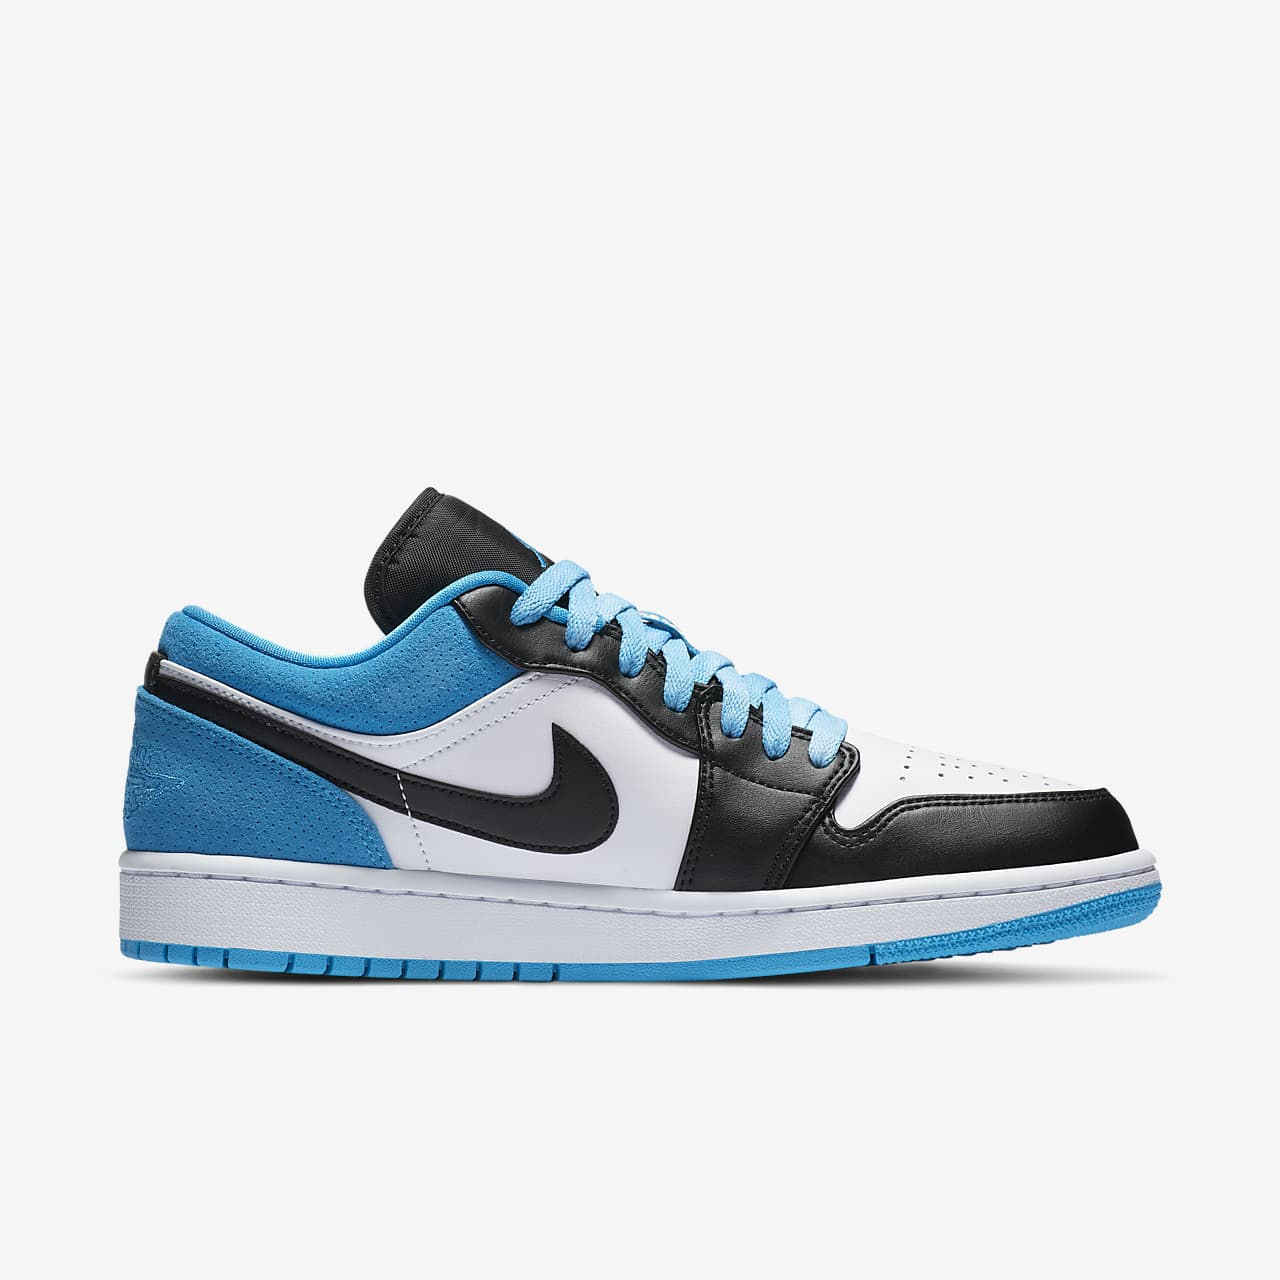 air jordan 1 low homme bleu